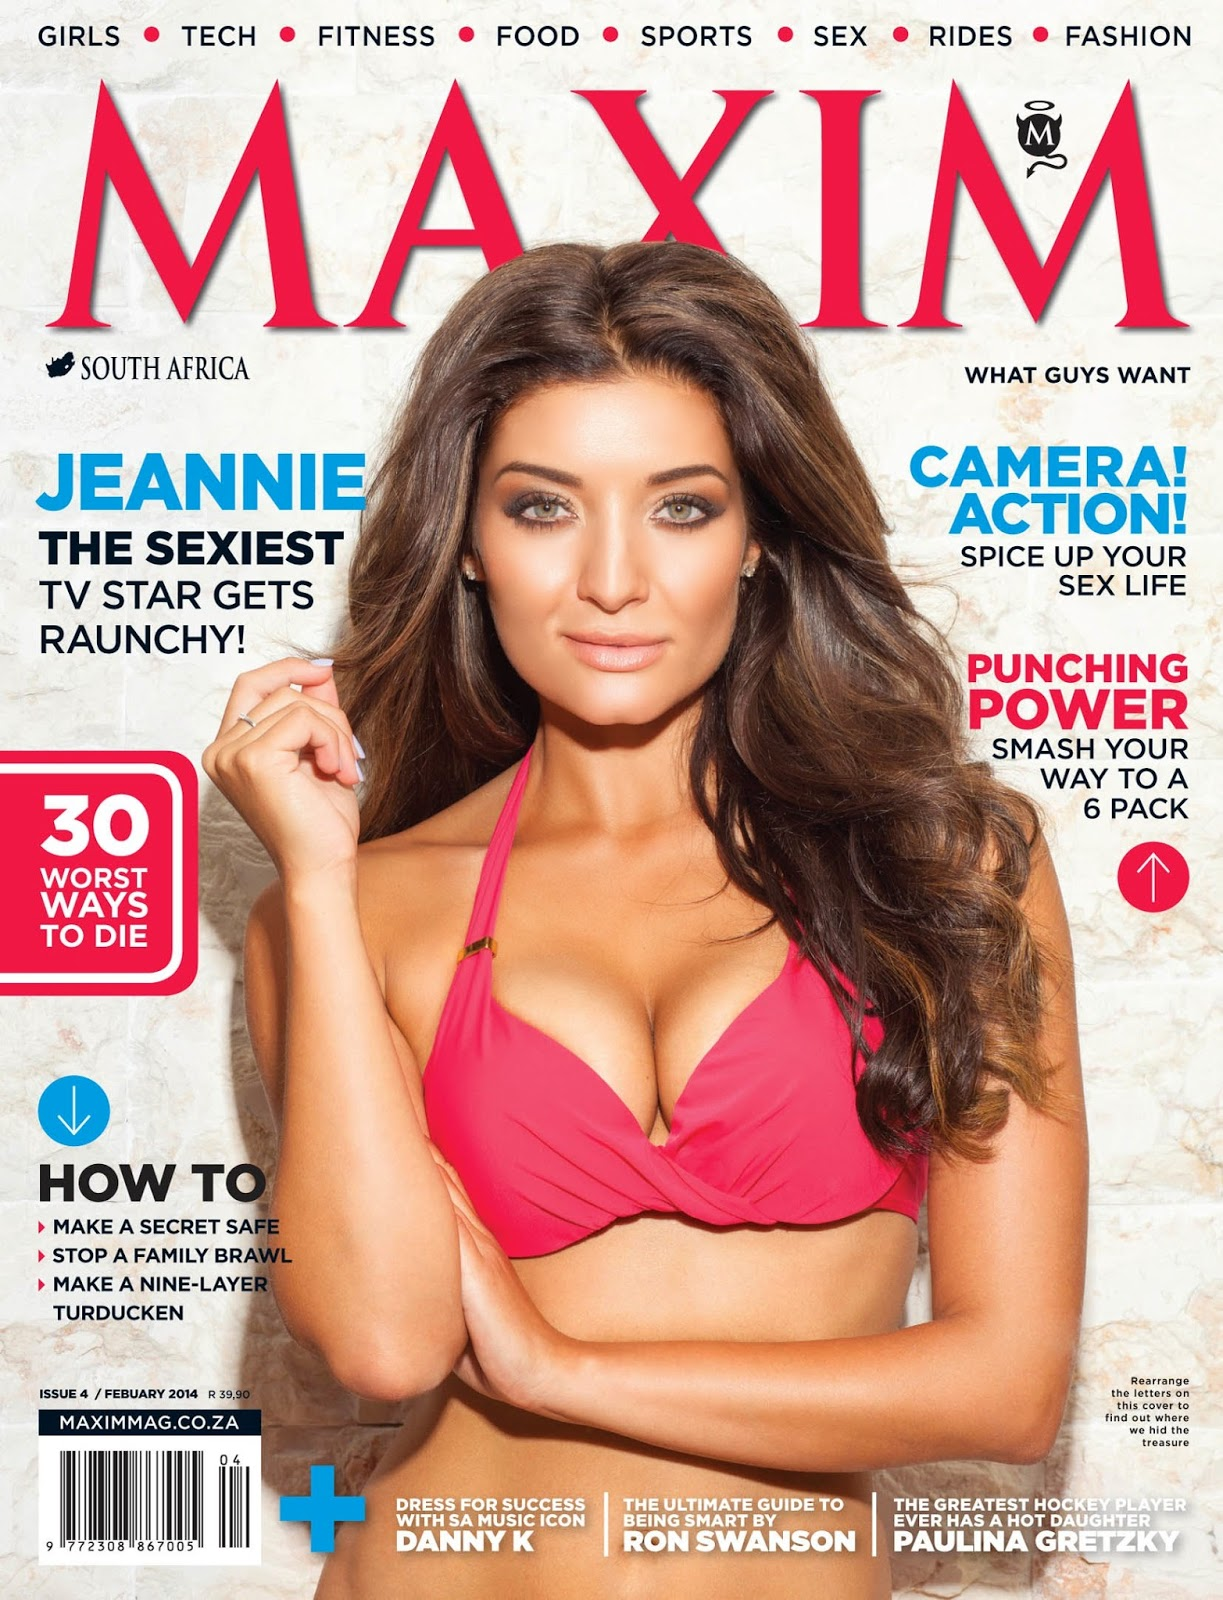 Magazine cover : Jeannie D Magazine Photoshoot Pics on Maxim Magazine South Africa February 2014 Issue